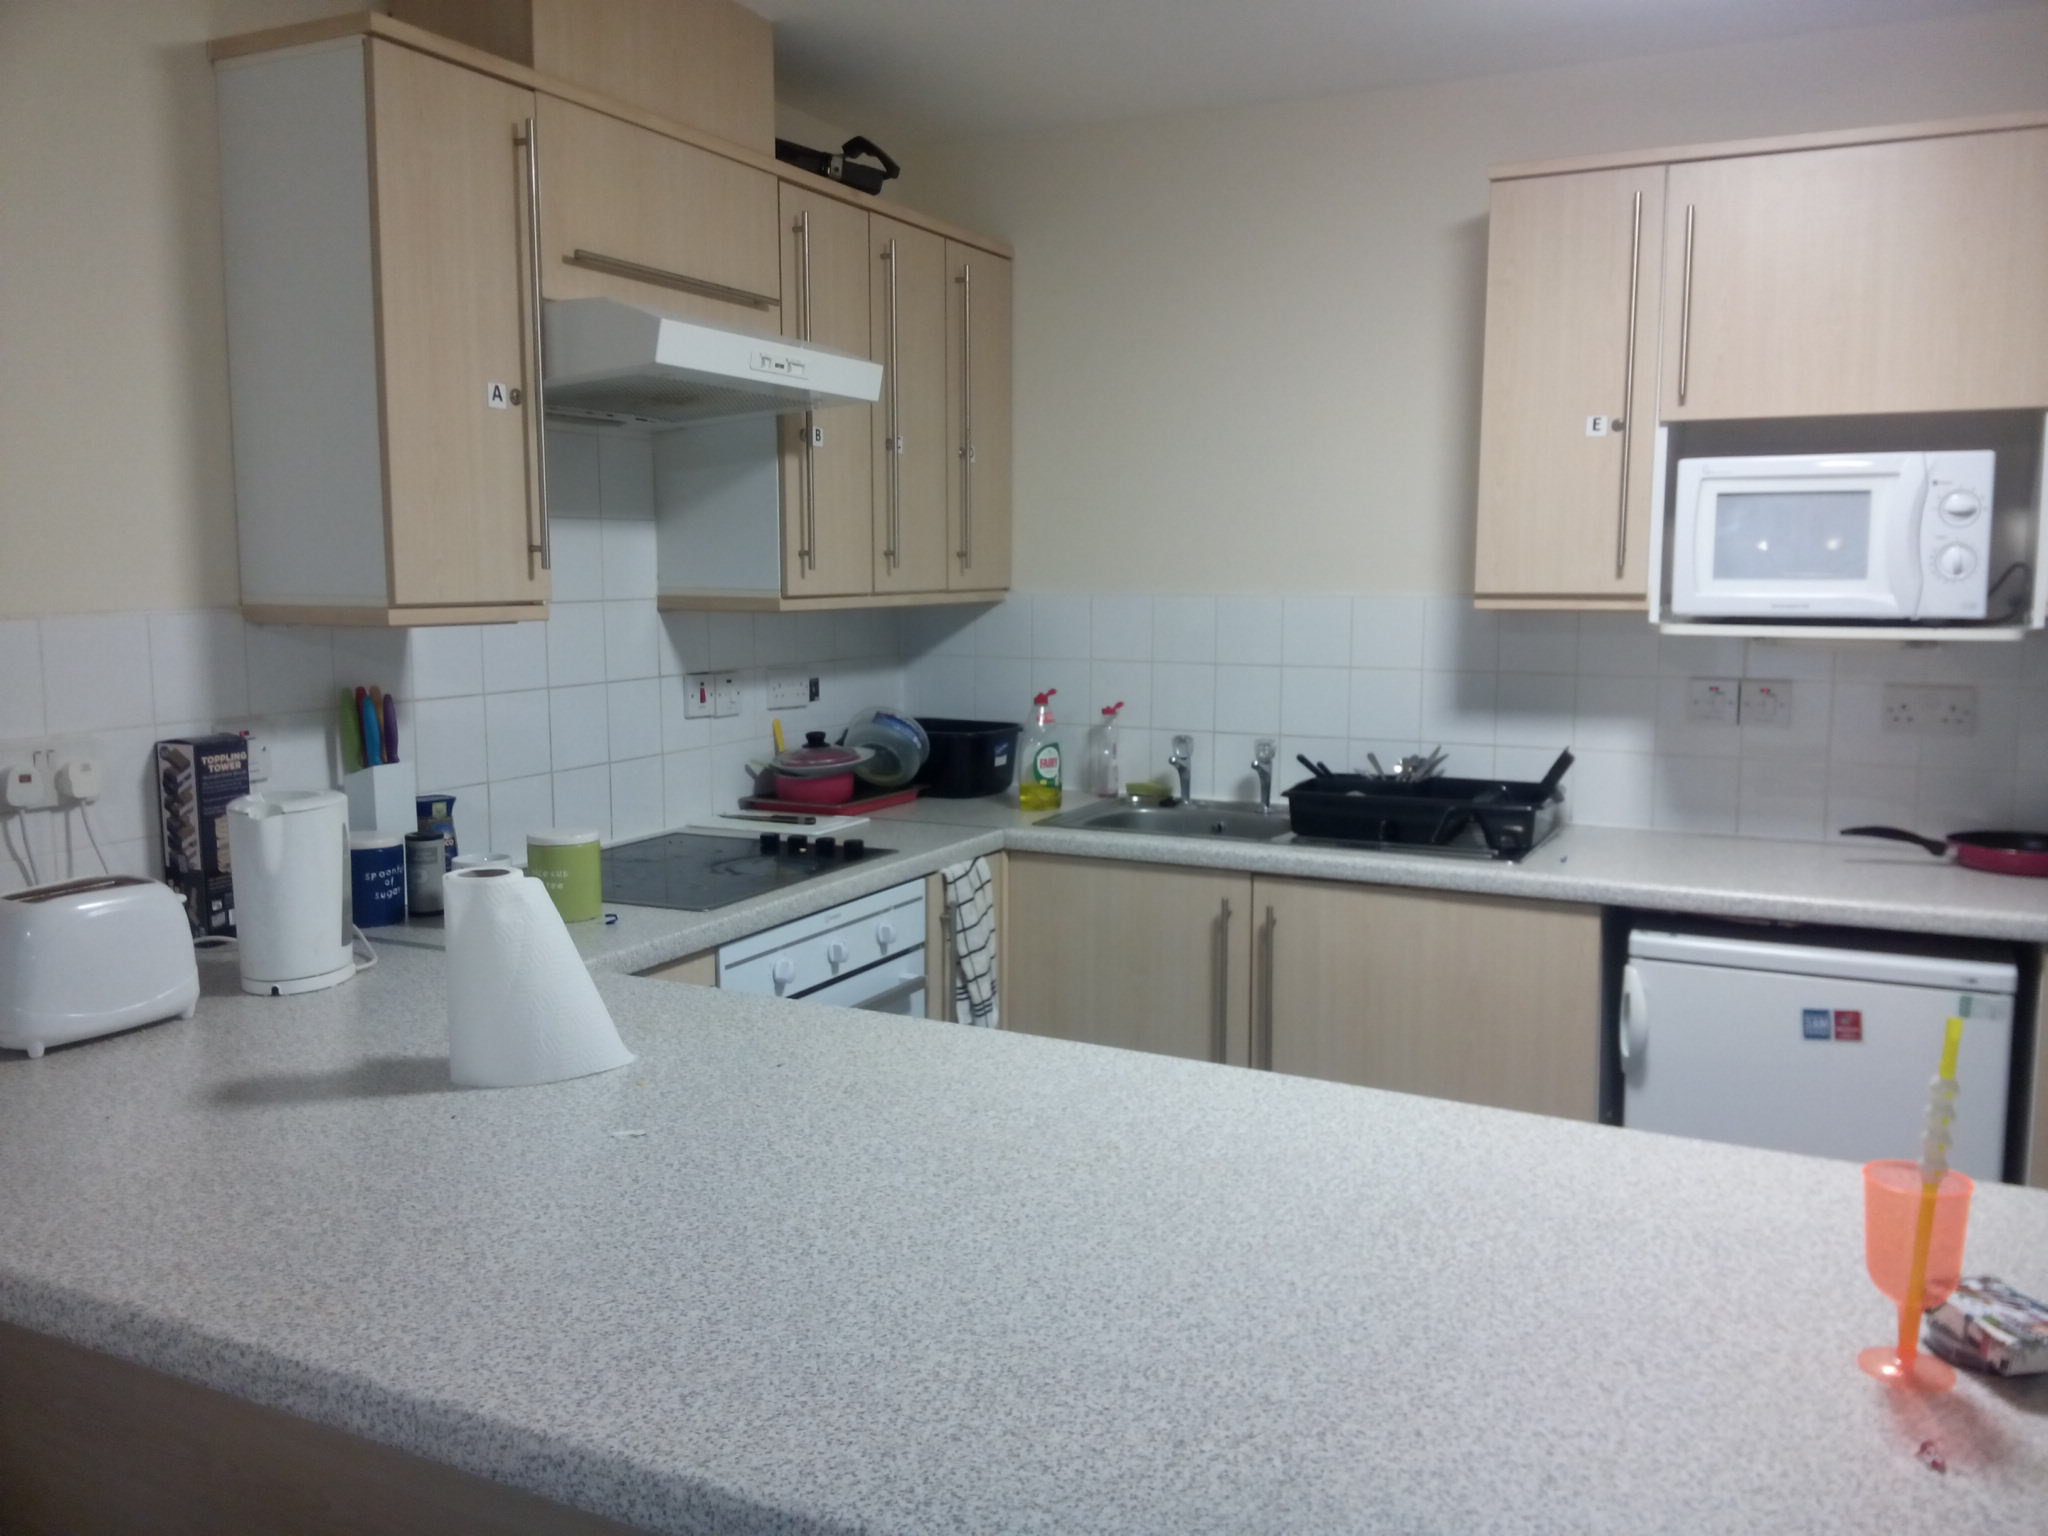 Private kitchen for users of individual flat, not shared with other accommodation users